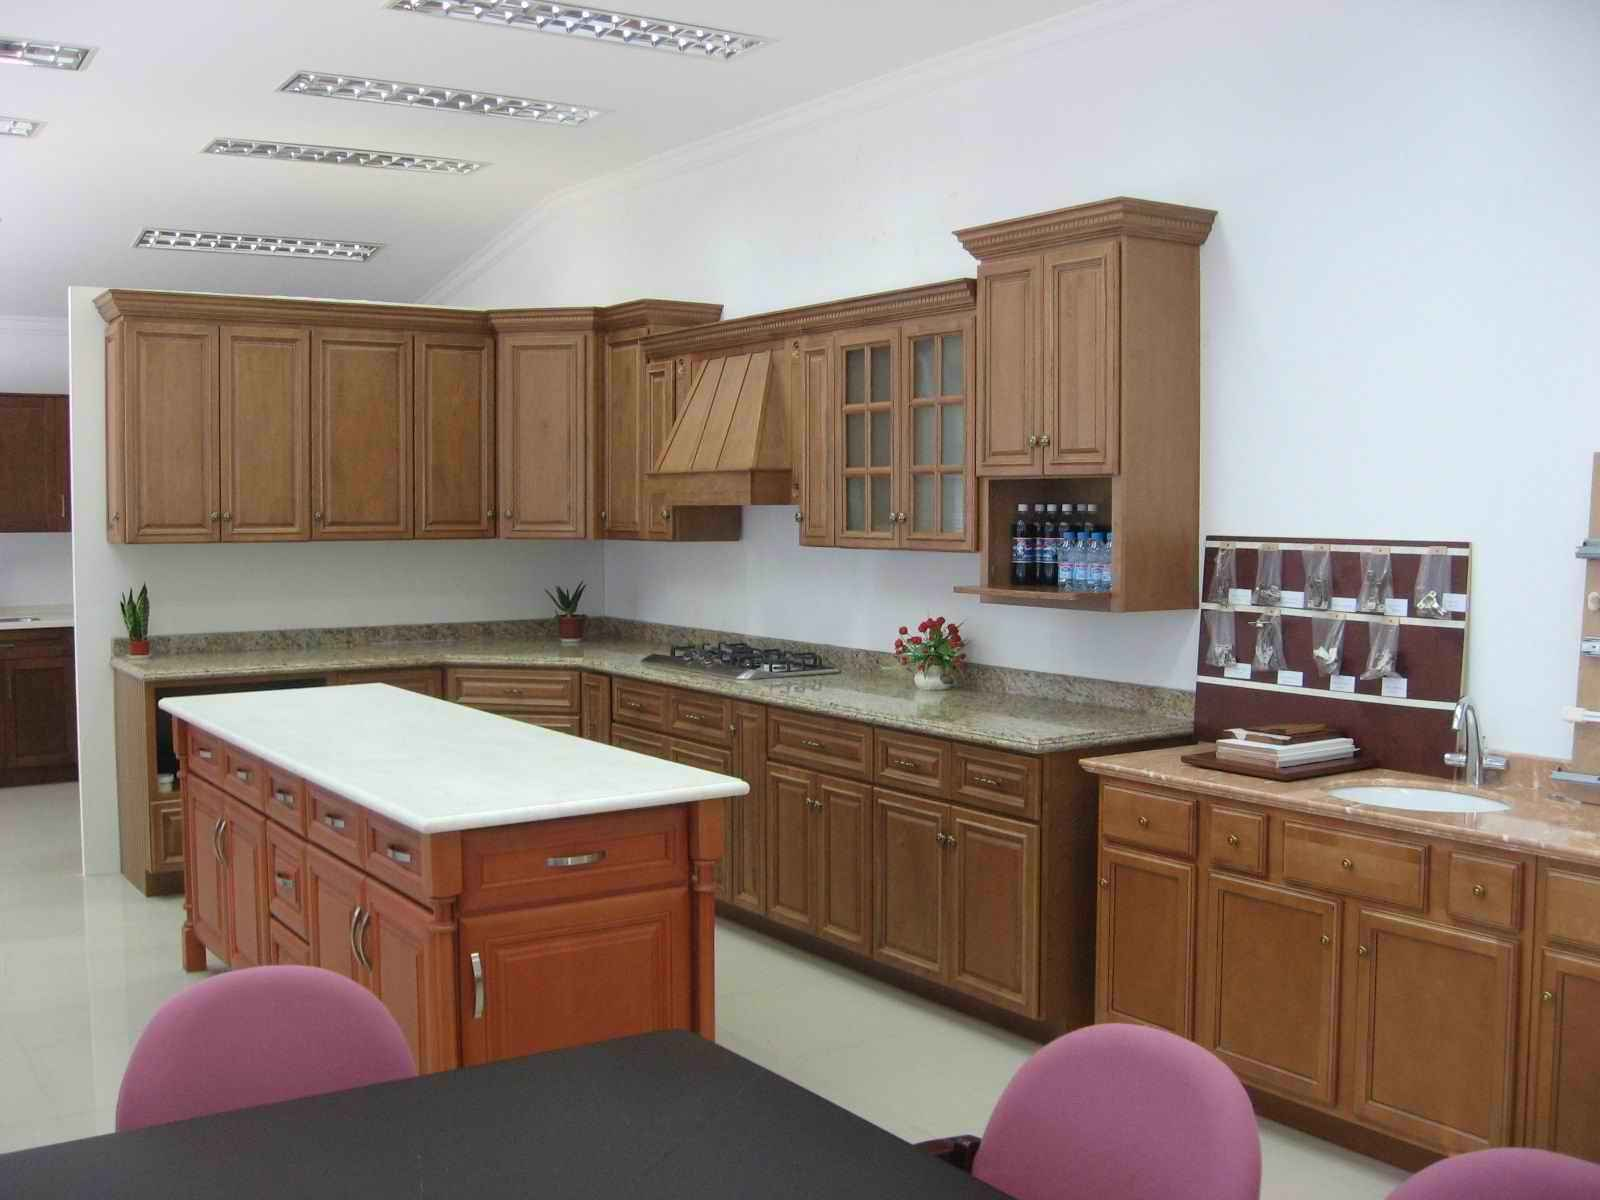 Home depot kitchens feel the home for Inexpensive wood kitchen cabinets